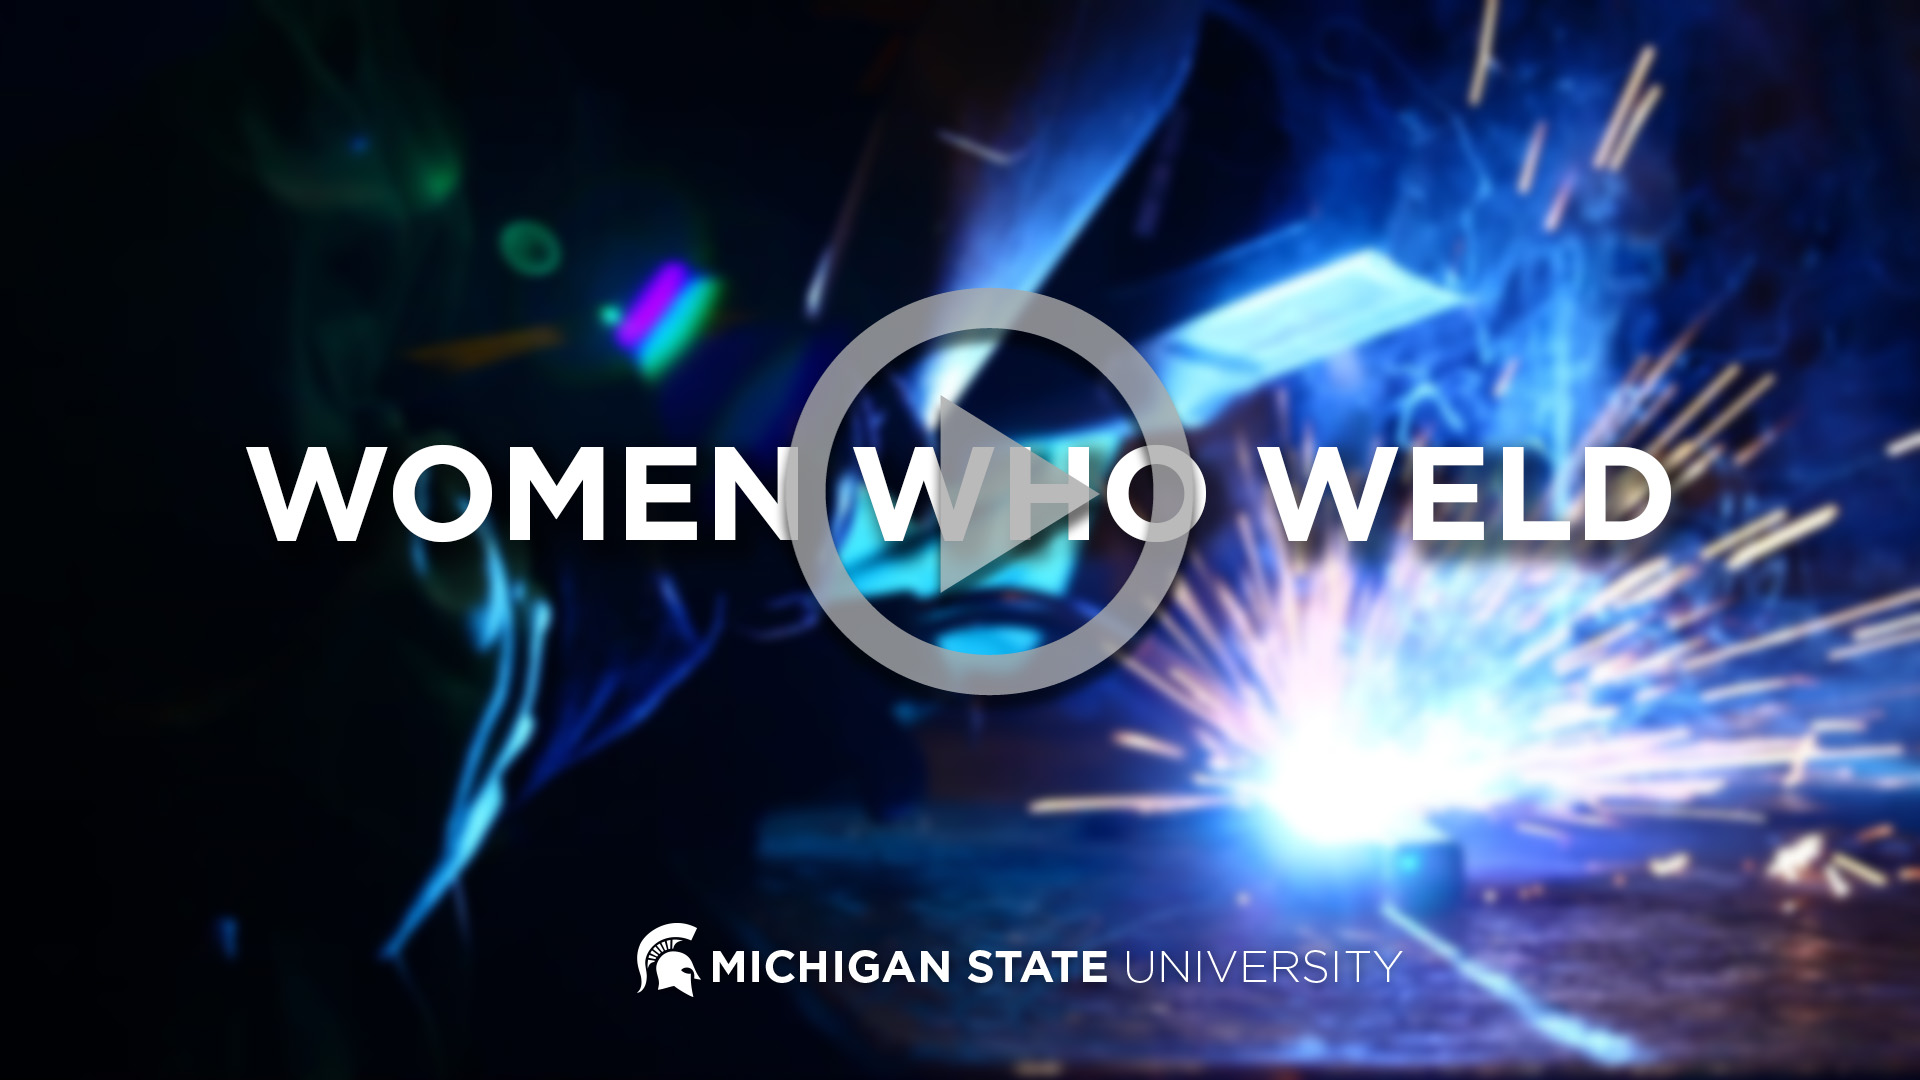 Women Who Weld Video Thumbnail